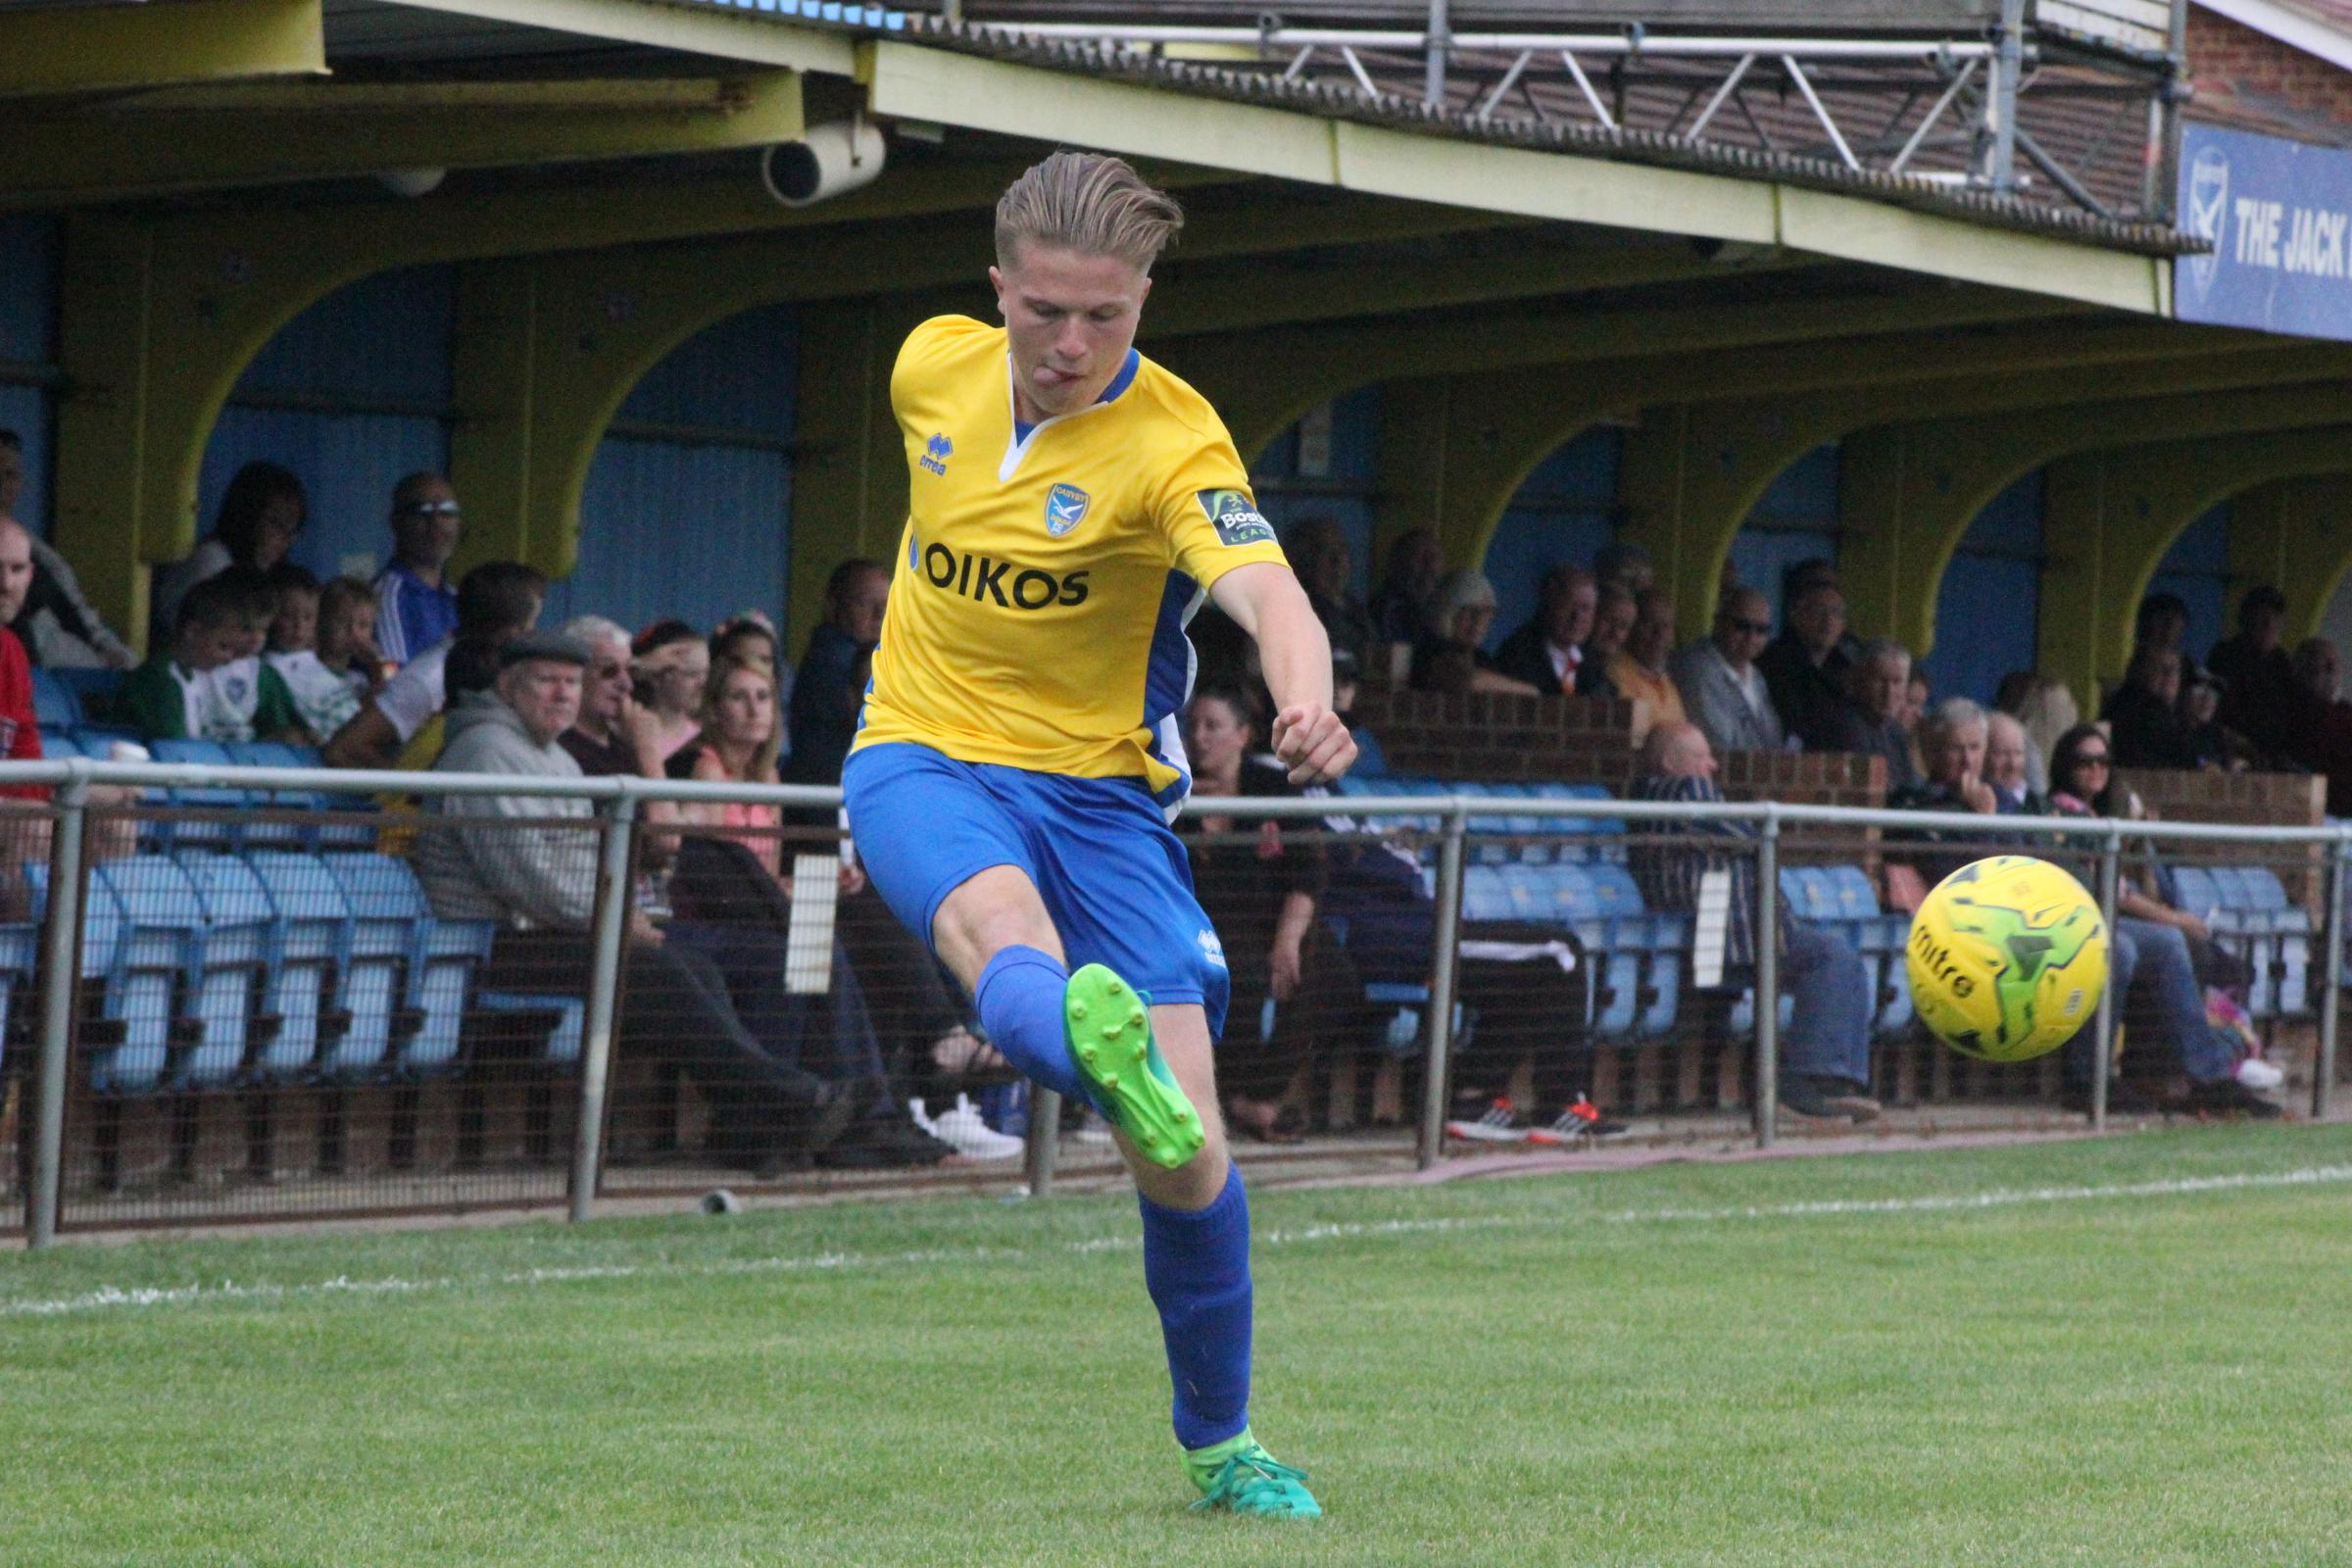 Departed - Jake Pitty has left Canvey